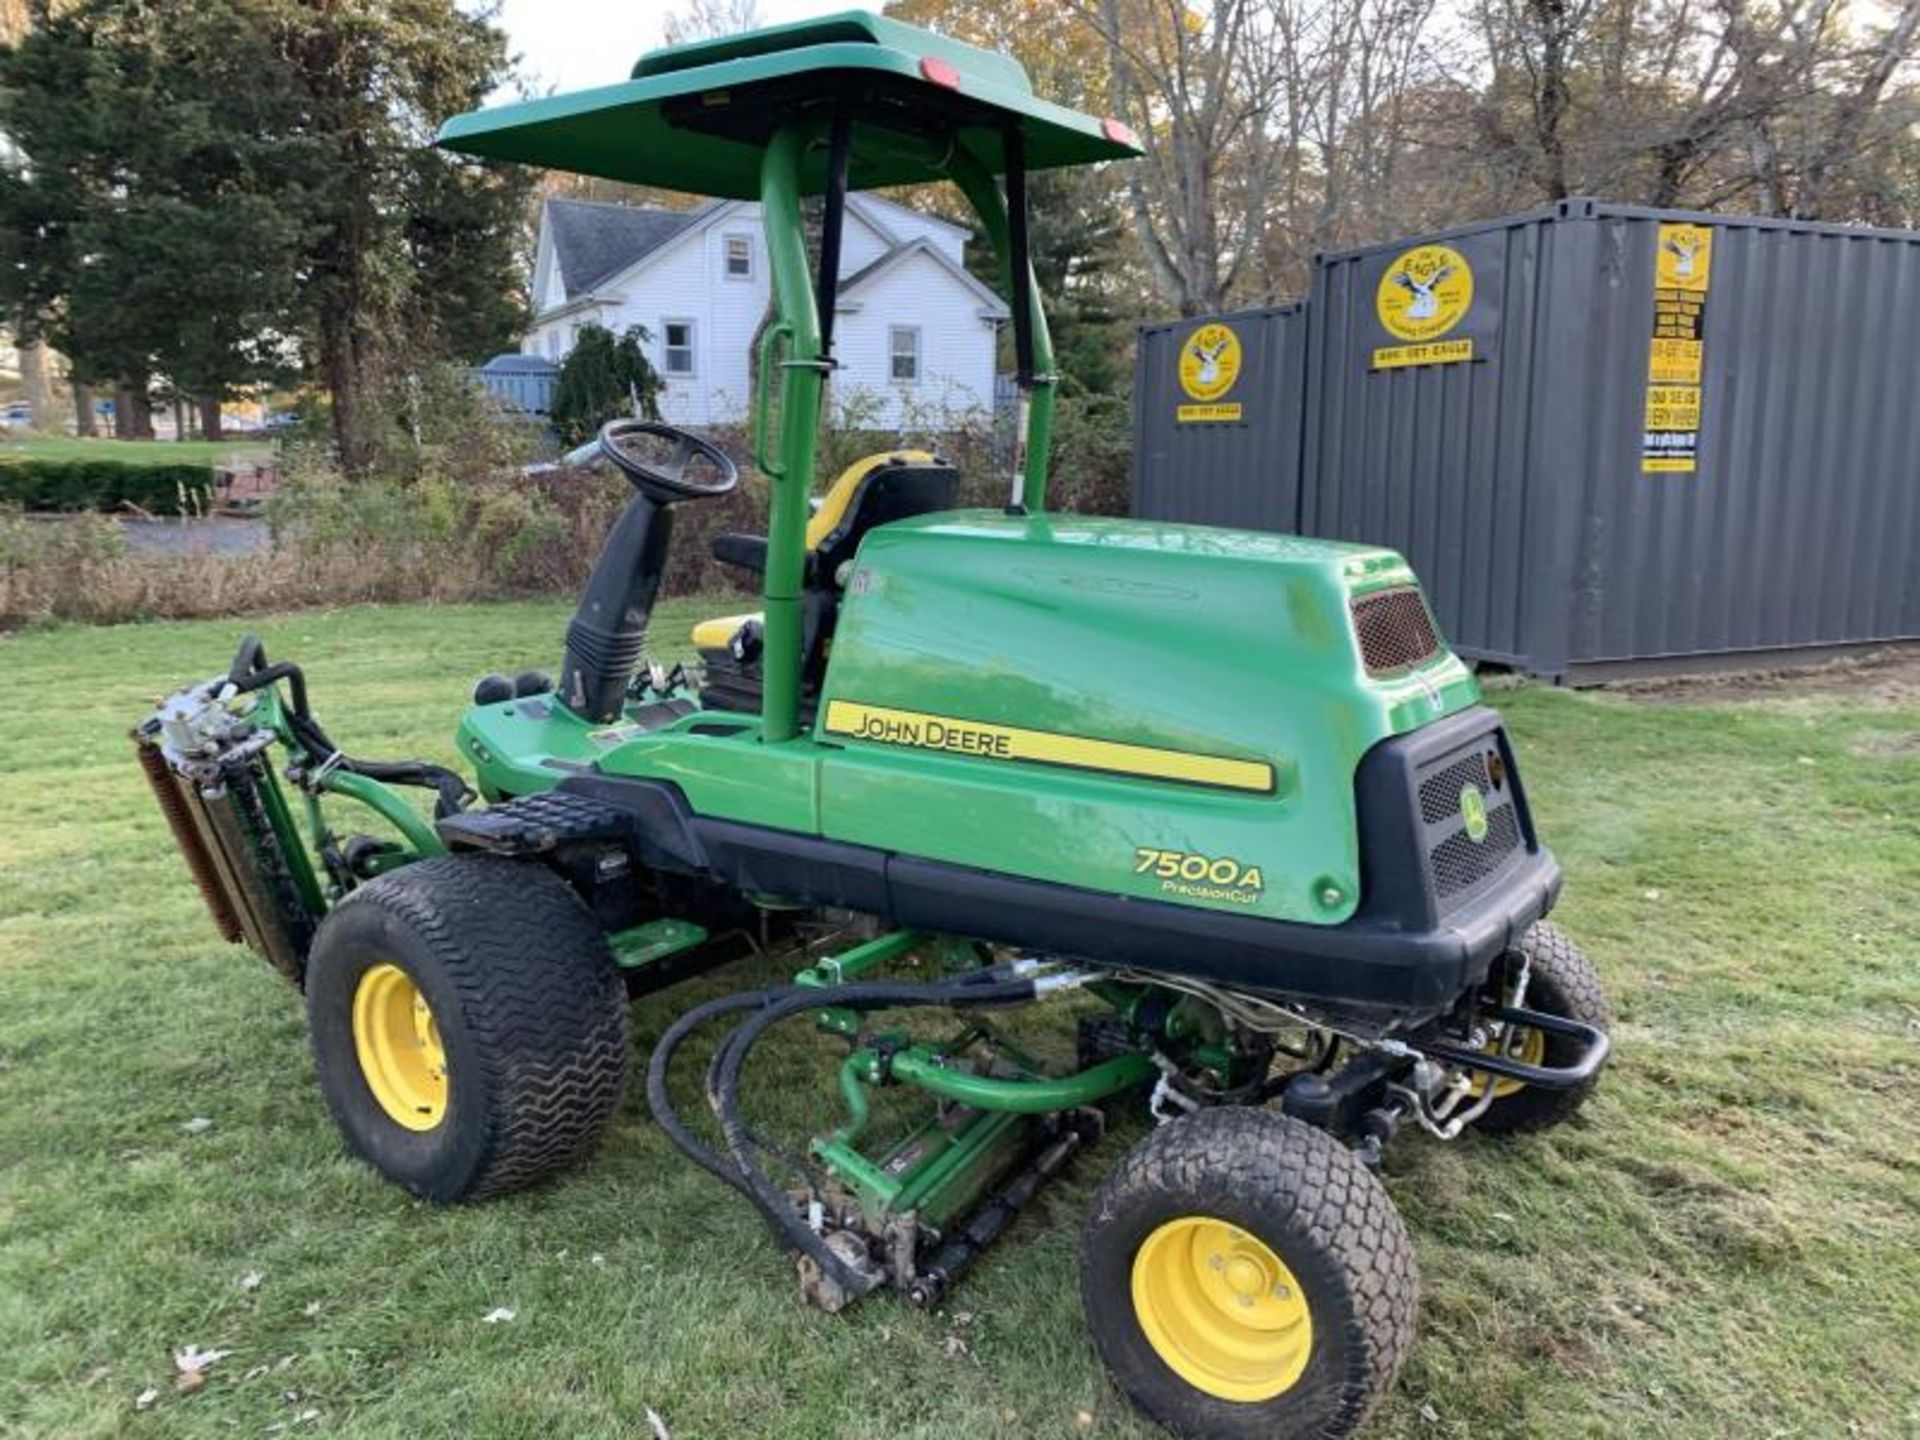 2016 John Deere 7500A Precision Cut 2WD T4, 2,355 Hours, SN: 1TC750AVLGR030141 - Image 16 of 17